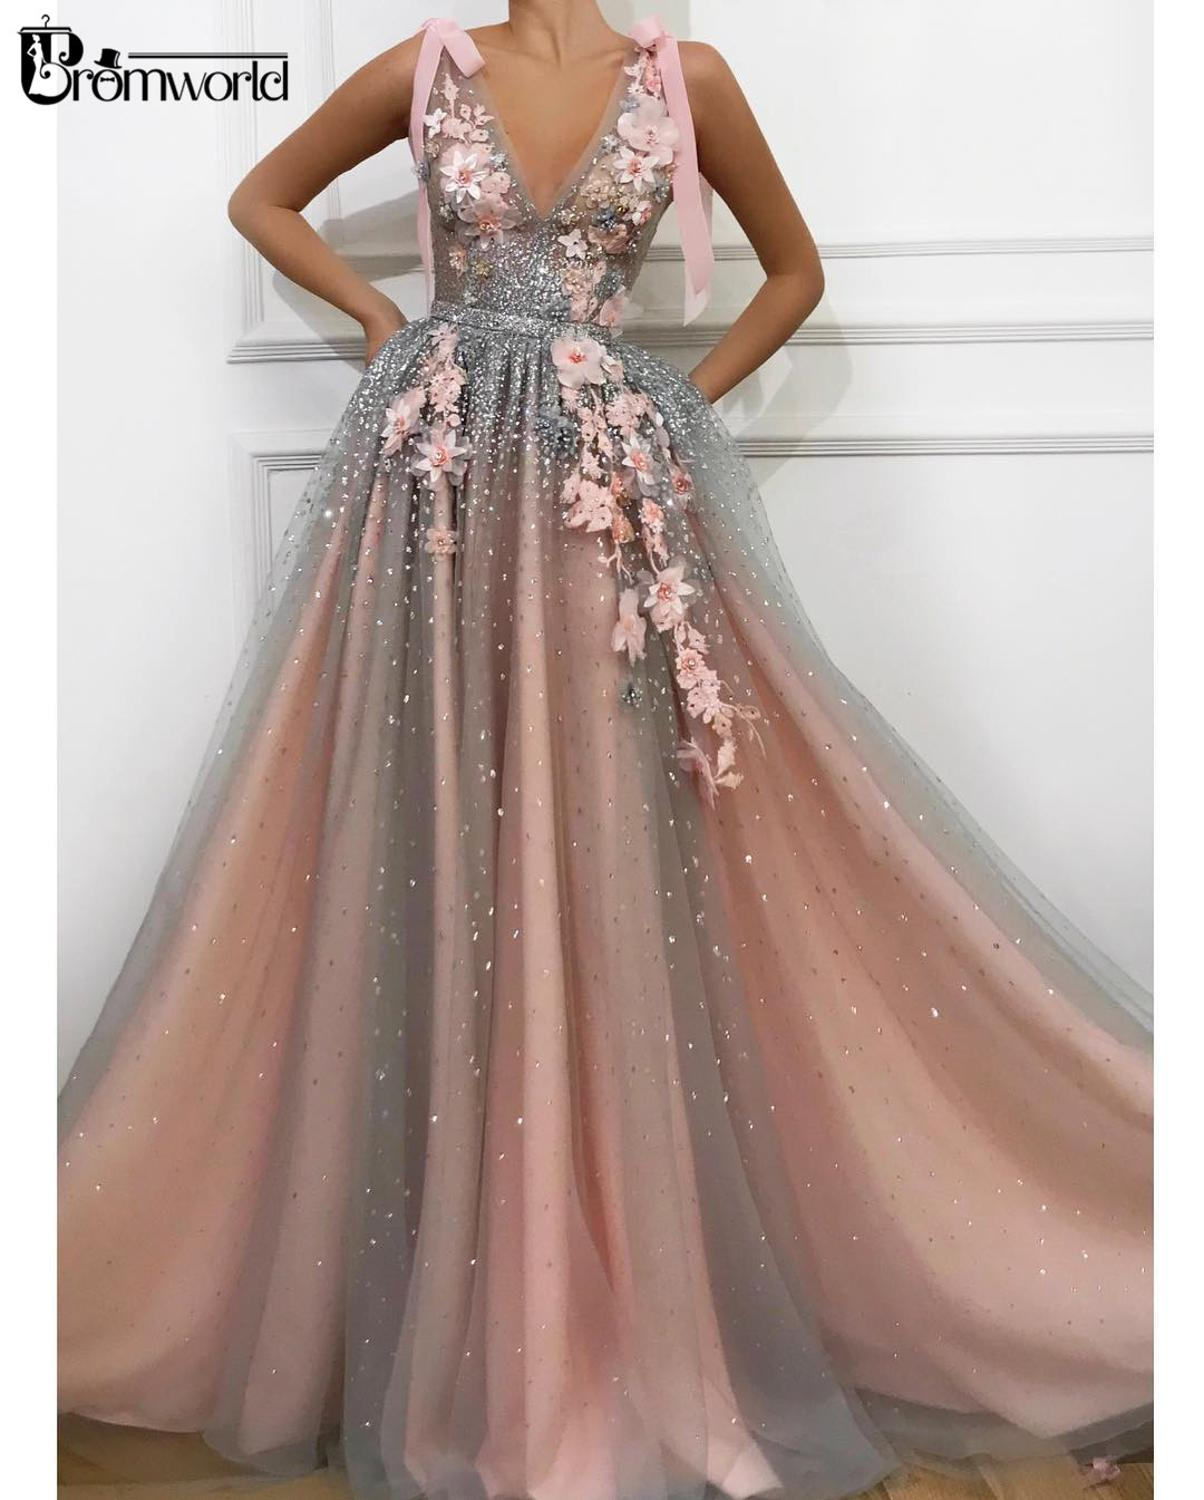 Pink Crystals Prom Dresses 2019 V-Neck Tulle Lace Flowers Beaded Vestidos De Gala Long Prom Gown Evening Party Robe De Soiree